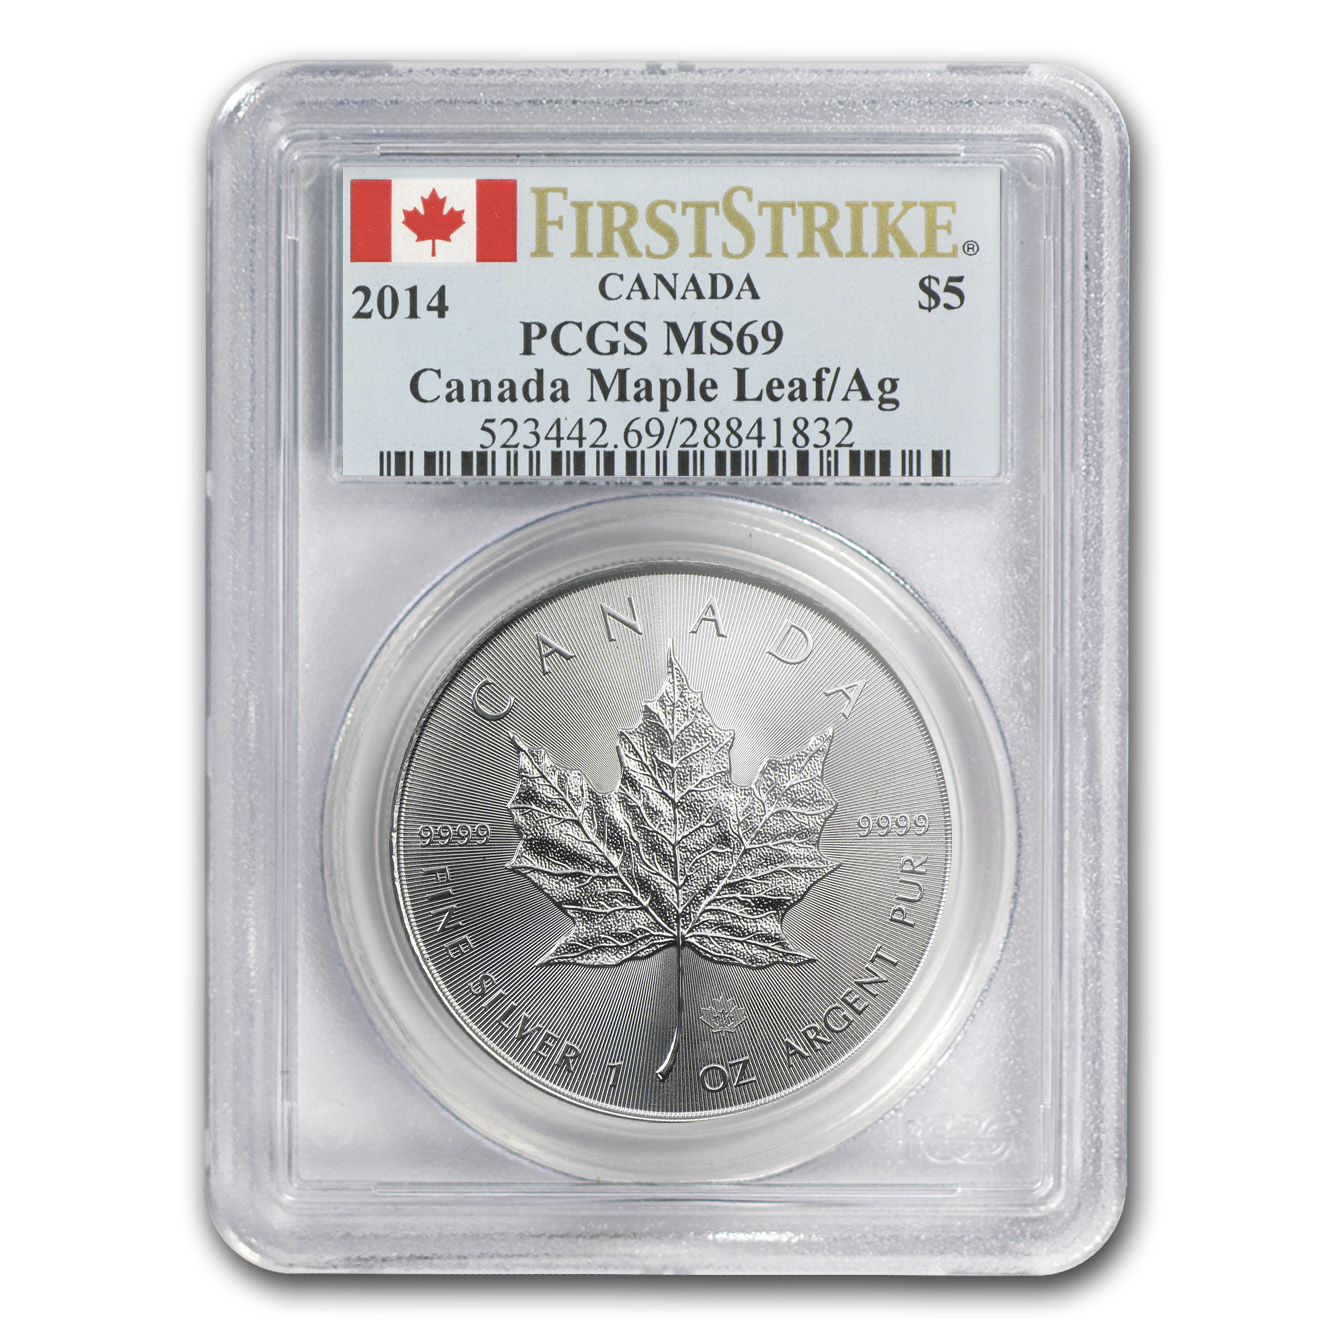 2014 Canada 1 oz Silver Maple Leaf MS-69 PCGS (First Strike)